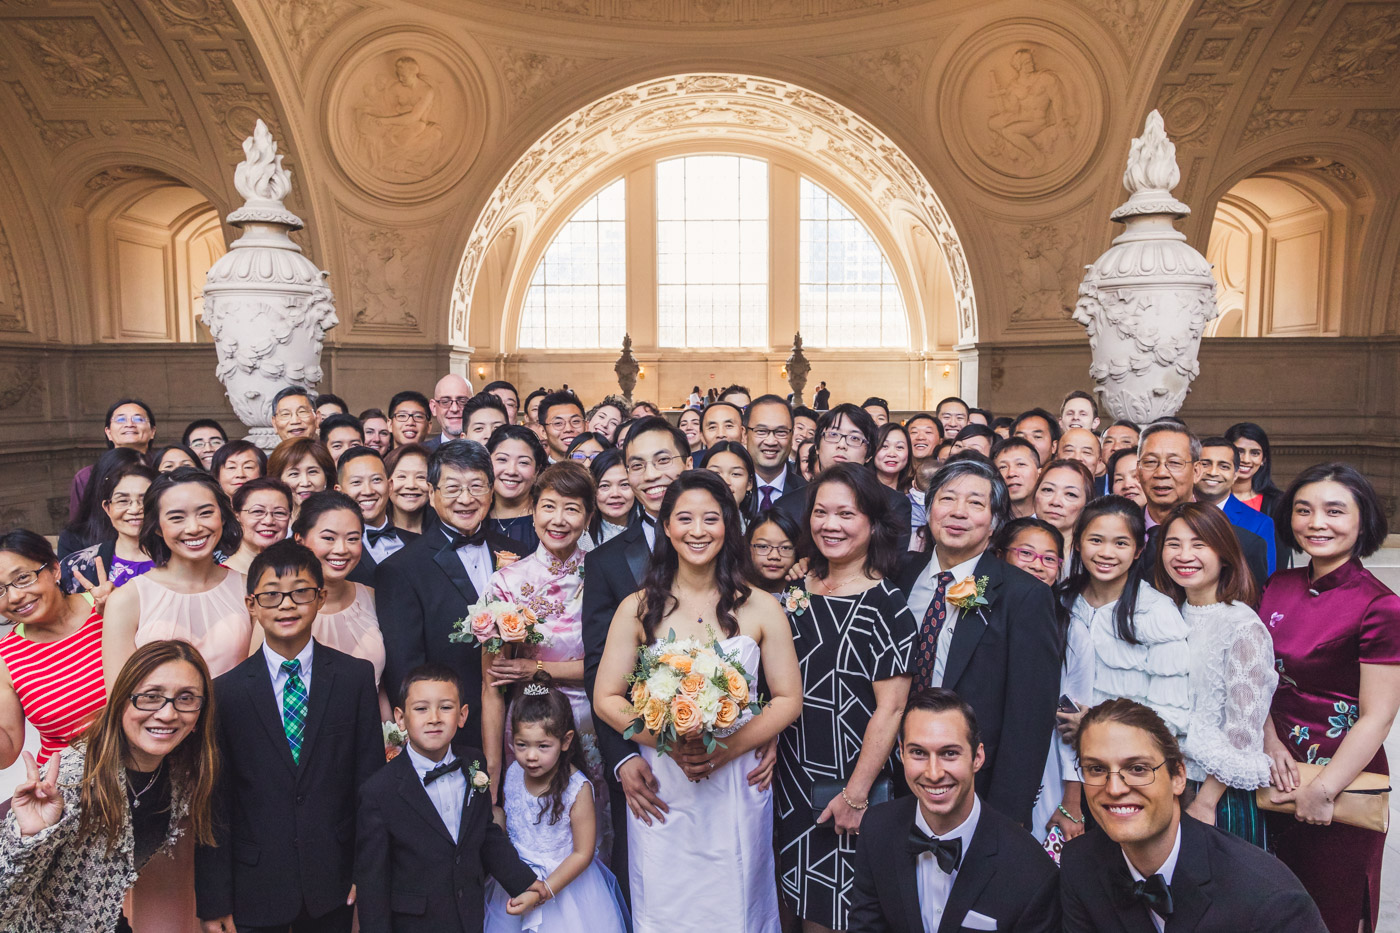 giant-wedding-guest-photo-sf-city-hall